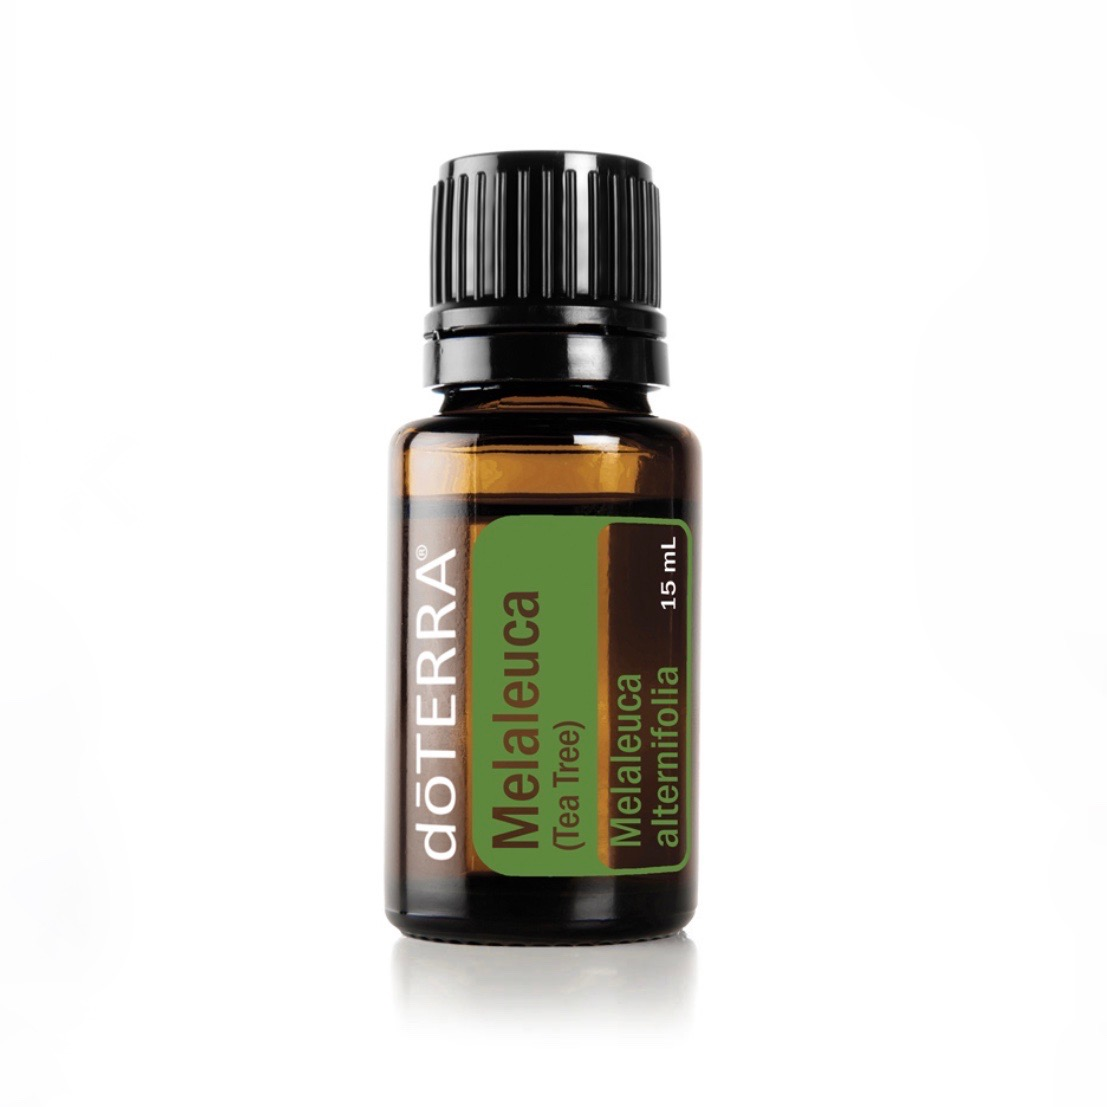 MELALEUCA / TEE TREE - Combine 1-2 drops with your facial cleanser or moisturizer for added cleaning properties or apply to skin after shaving.Apply to fingernails and toenails to keep nails looking clean and healthy.Use as an effective surface cleaner.Add a few drops to schampoo or massage into scalp.Add to toothpaste or swish with water for a quick and easy mouth rinse.